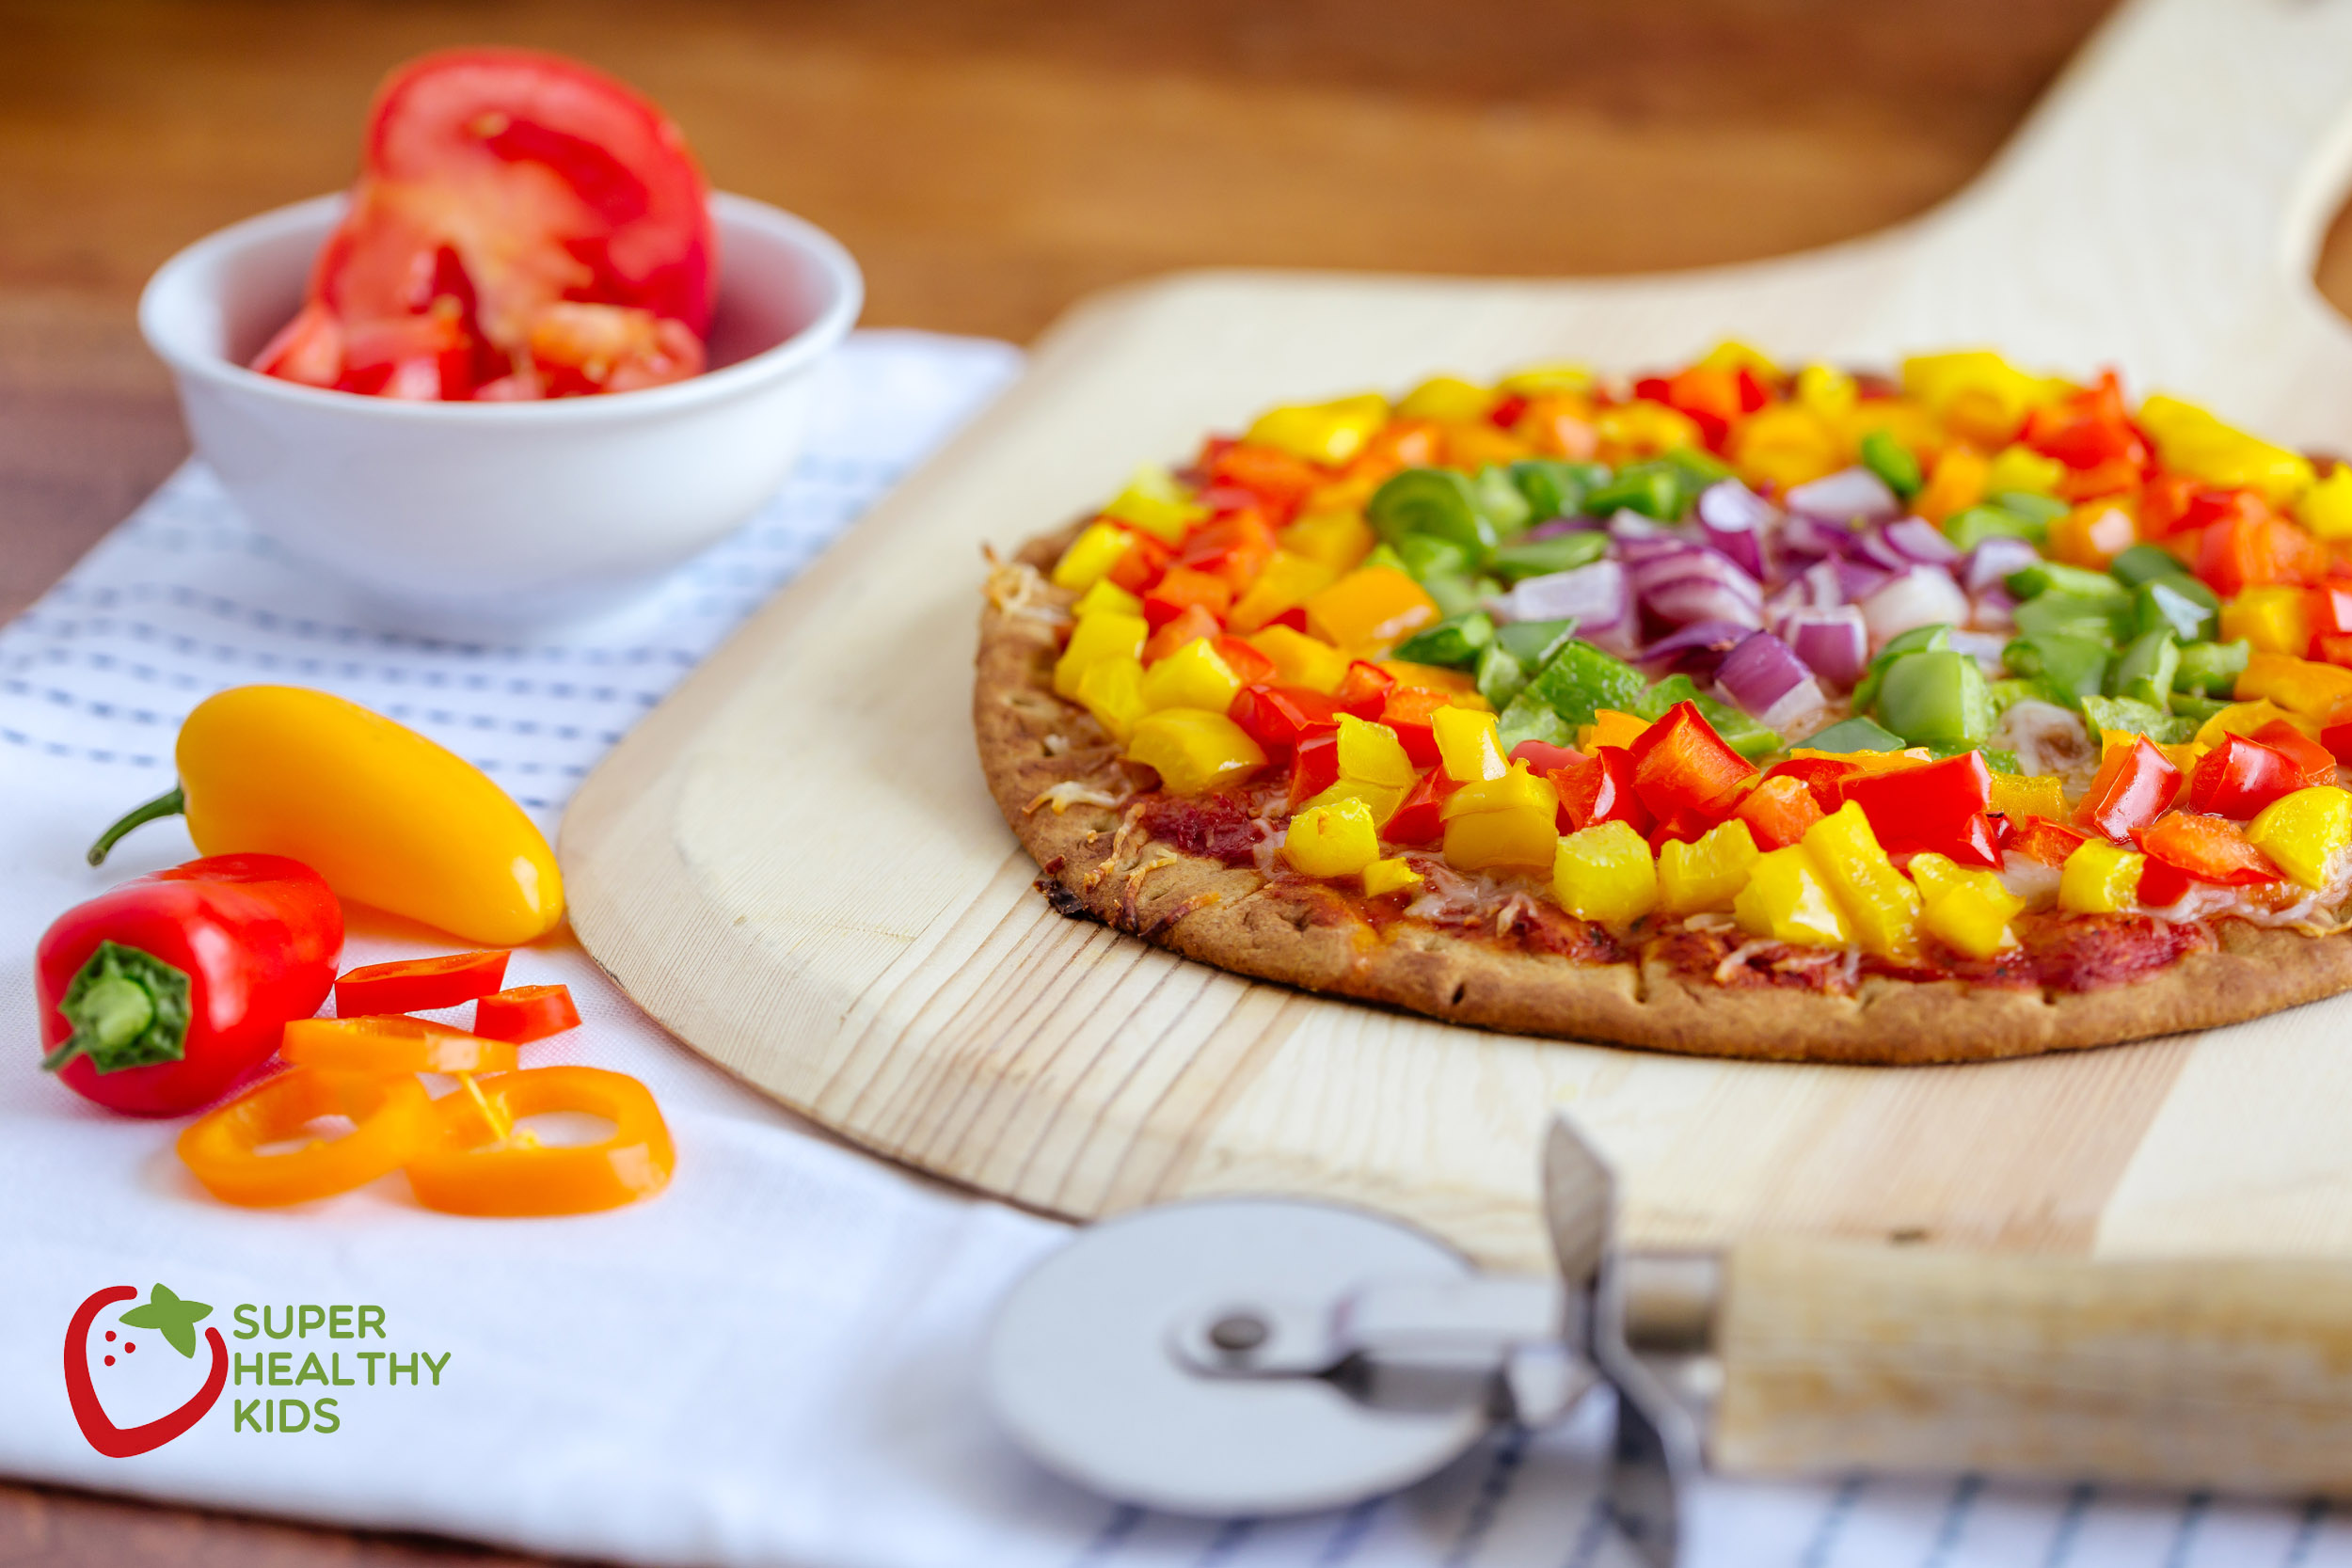 rainbow-pizza-for-super-healthy-kids.jpg